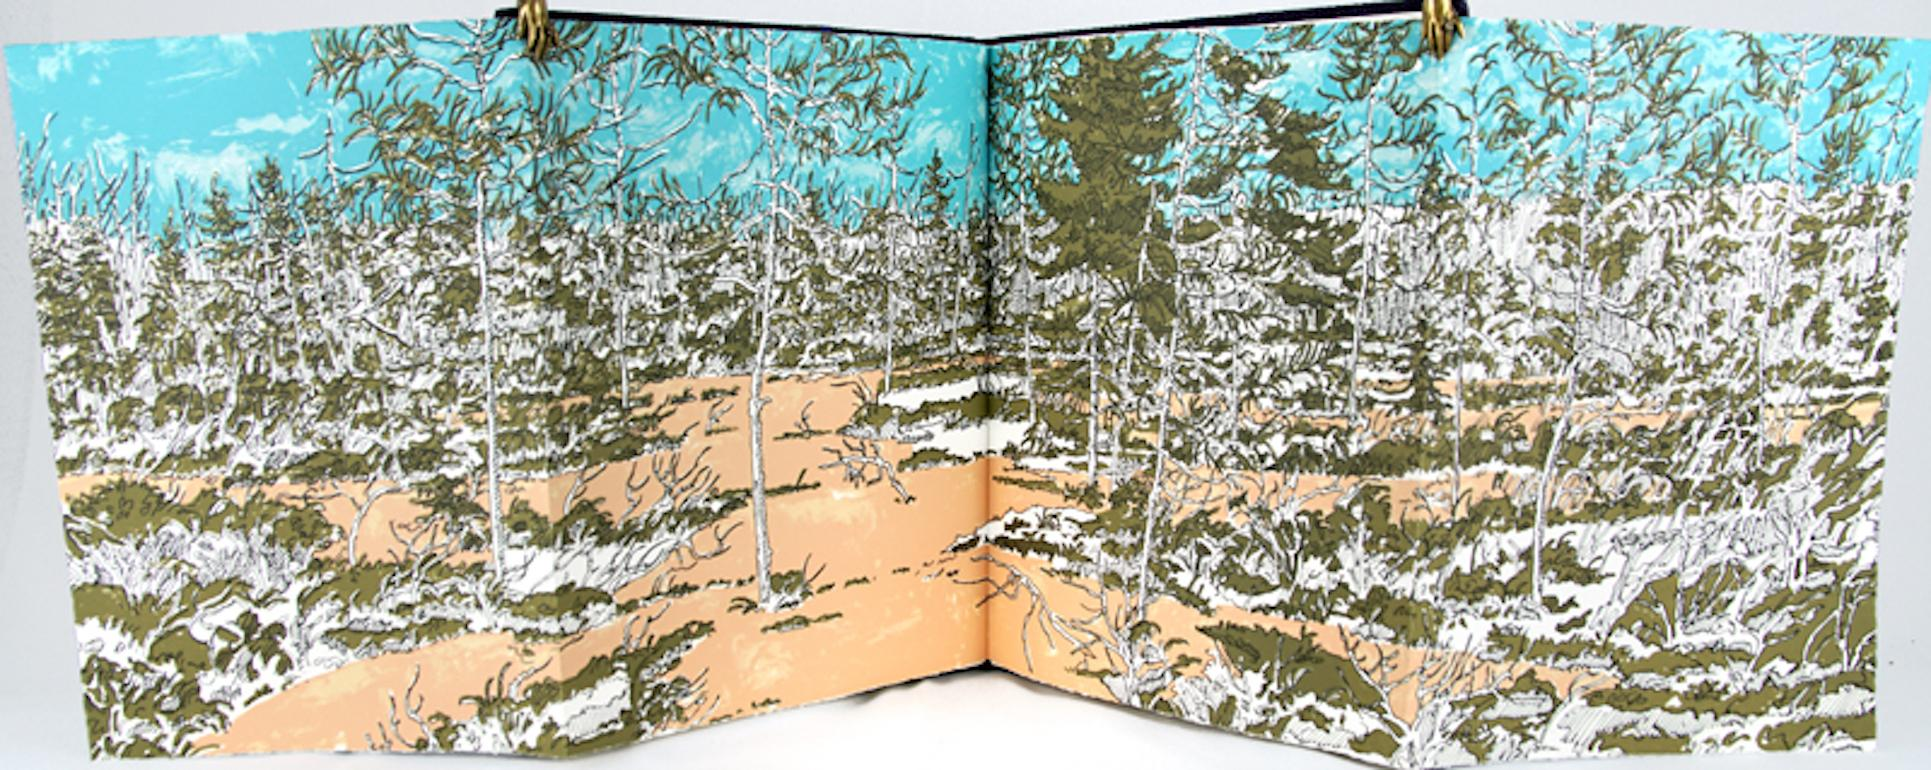 Poems by Henrik Ibsen with lithograph and etchings by Neil Welliver